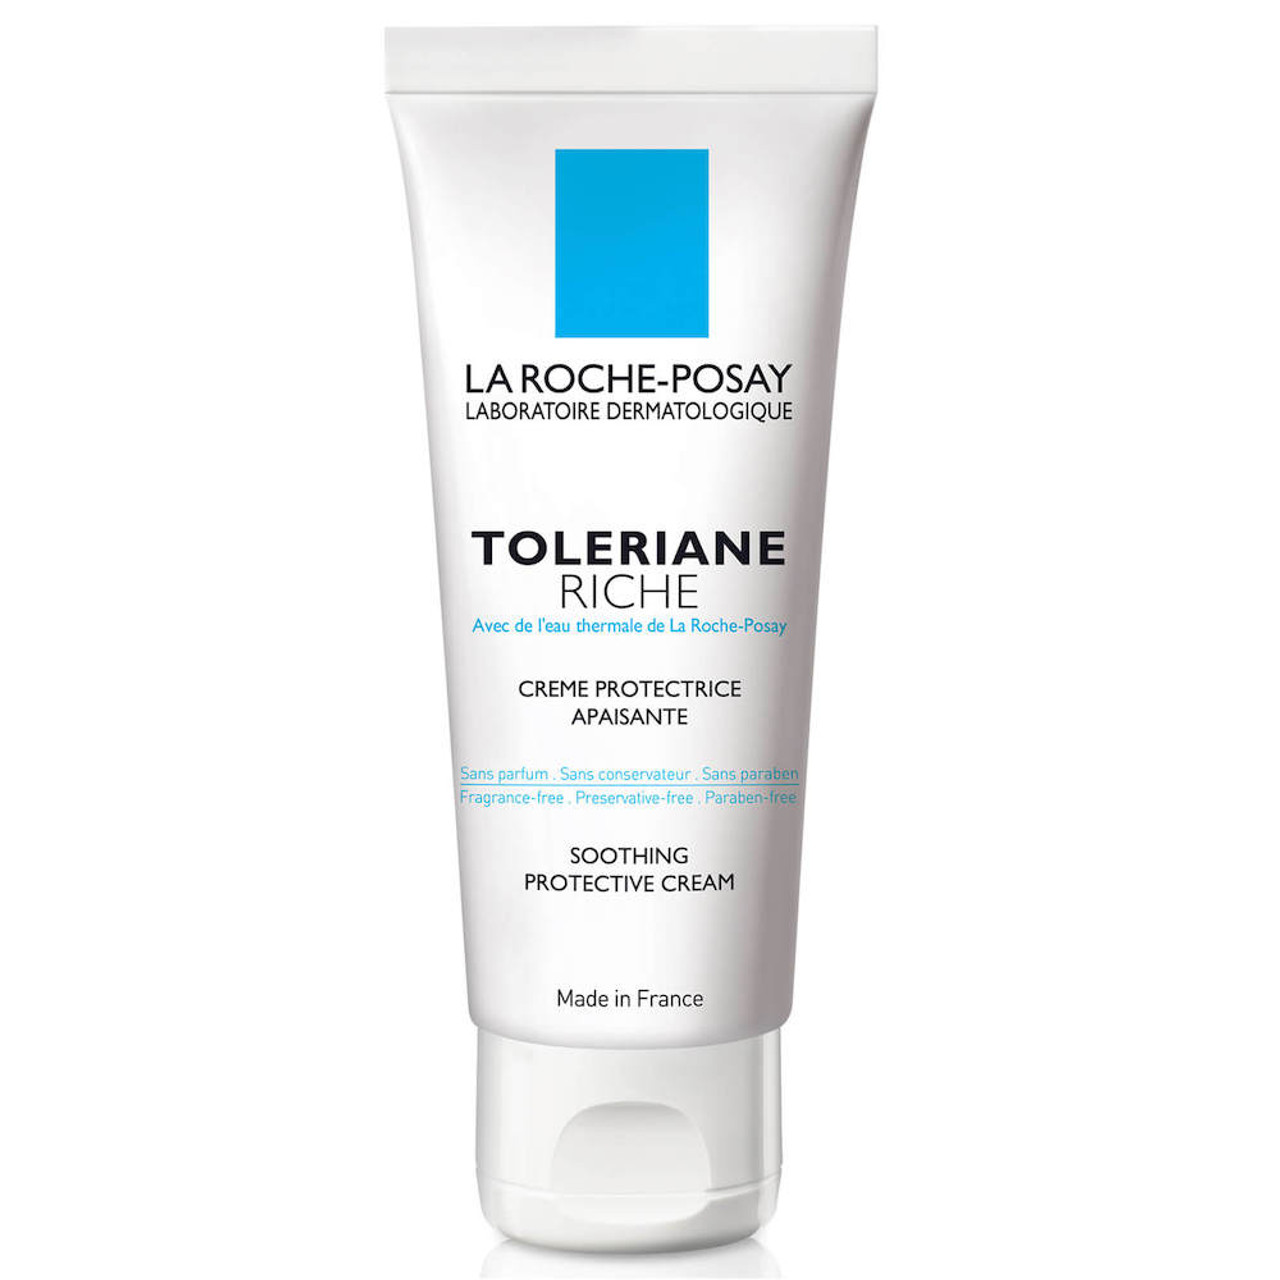 La Roche Posay Toleriane Riche Soothing Protective Cream For Very Dry Skin